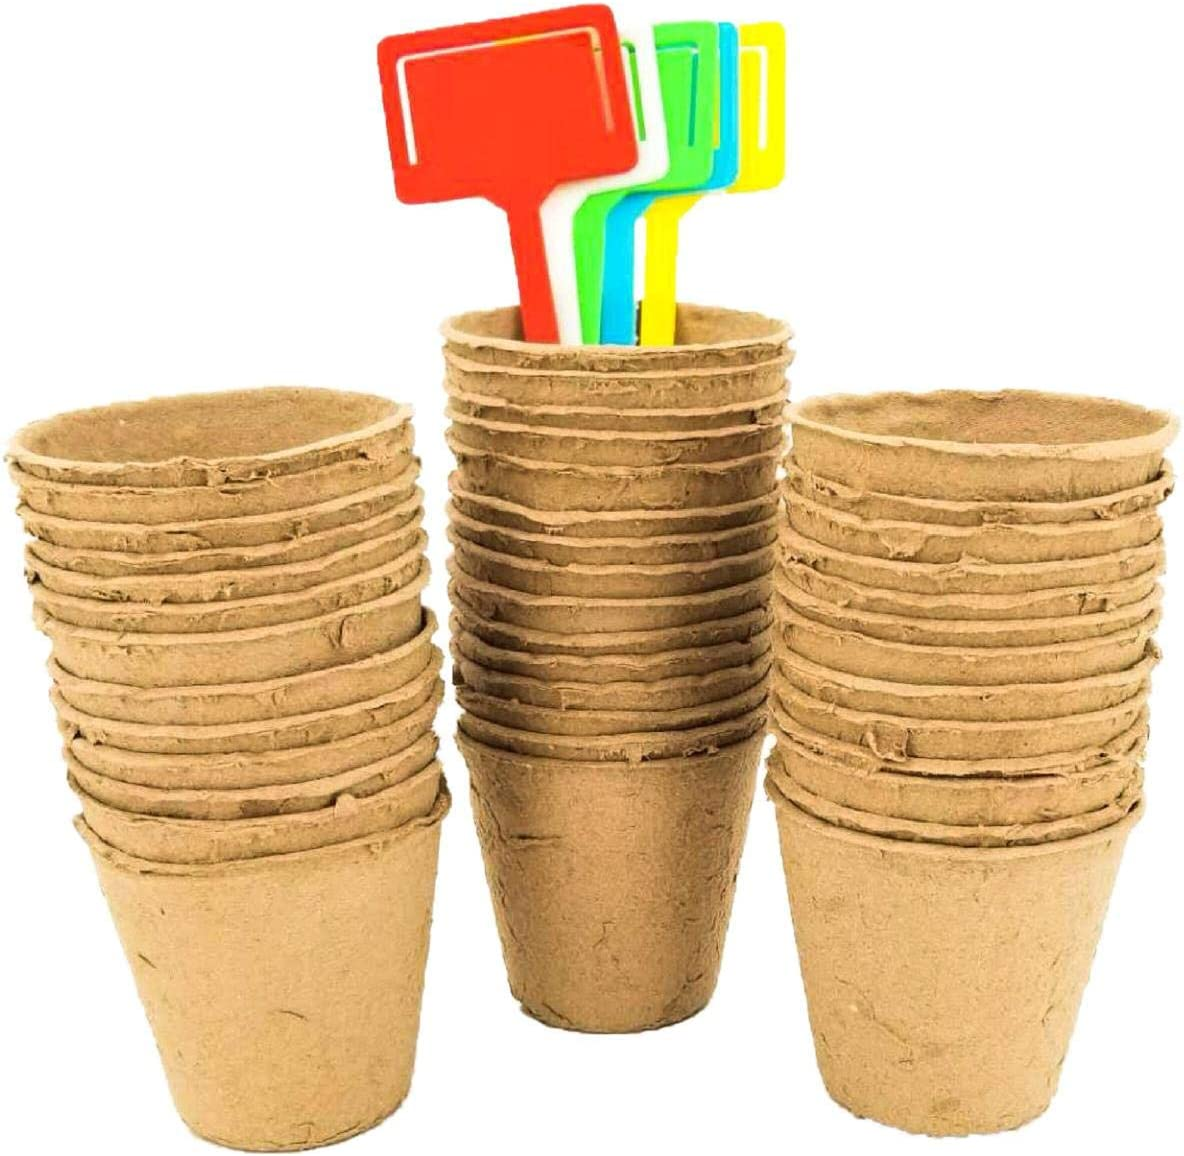 Seed Starter peat Pots KIT |100% Organic Biodegradable | Cup for Planting Vegetable and Tomato seeds |10 FREE TAGS INCLUDED | 3,5 Inch - 50 PCS | ECO-FRIENDLY